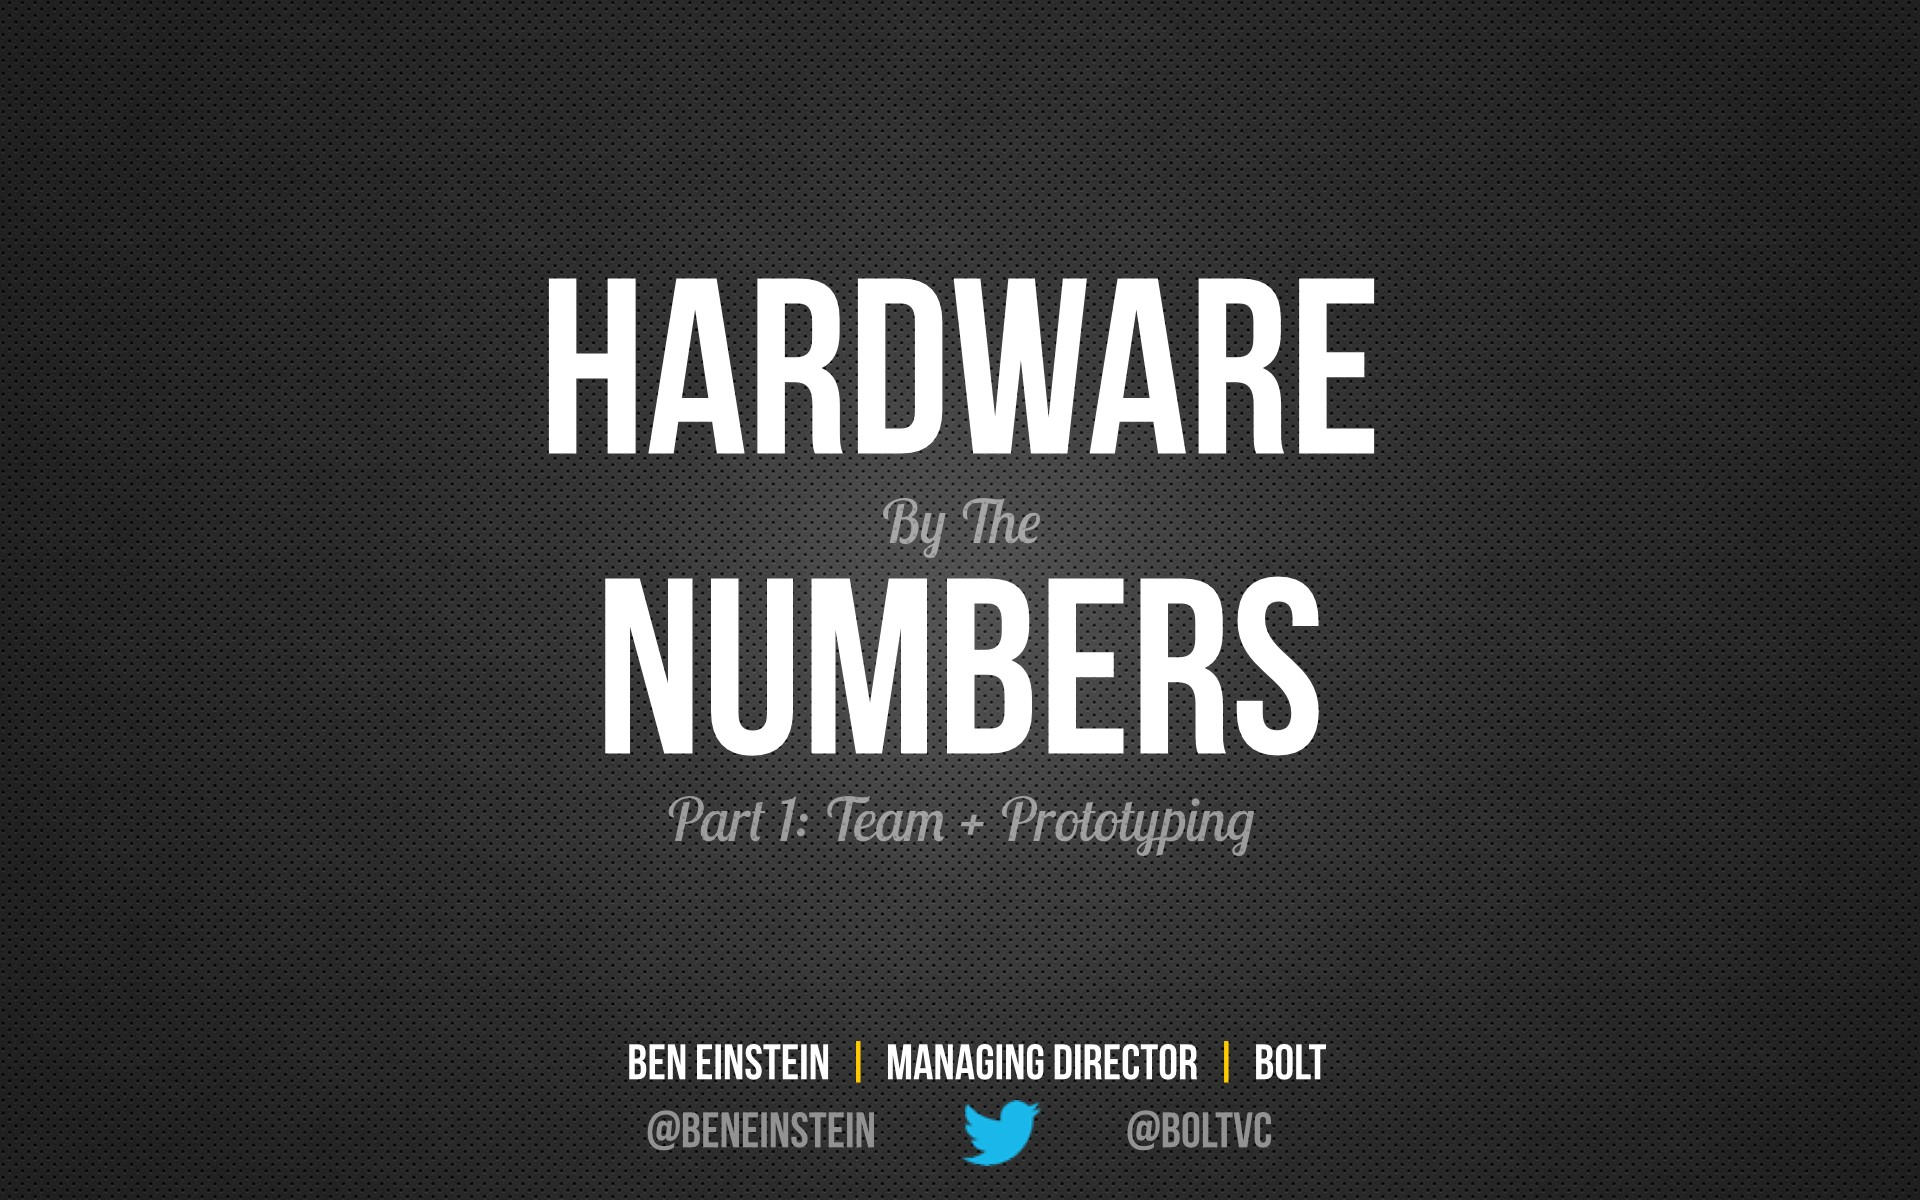 Hardware by the Numbers (Part 1: Team + Prototyping)